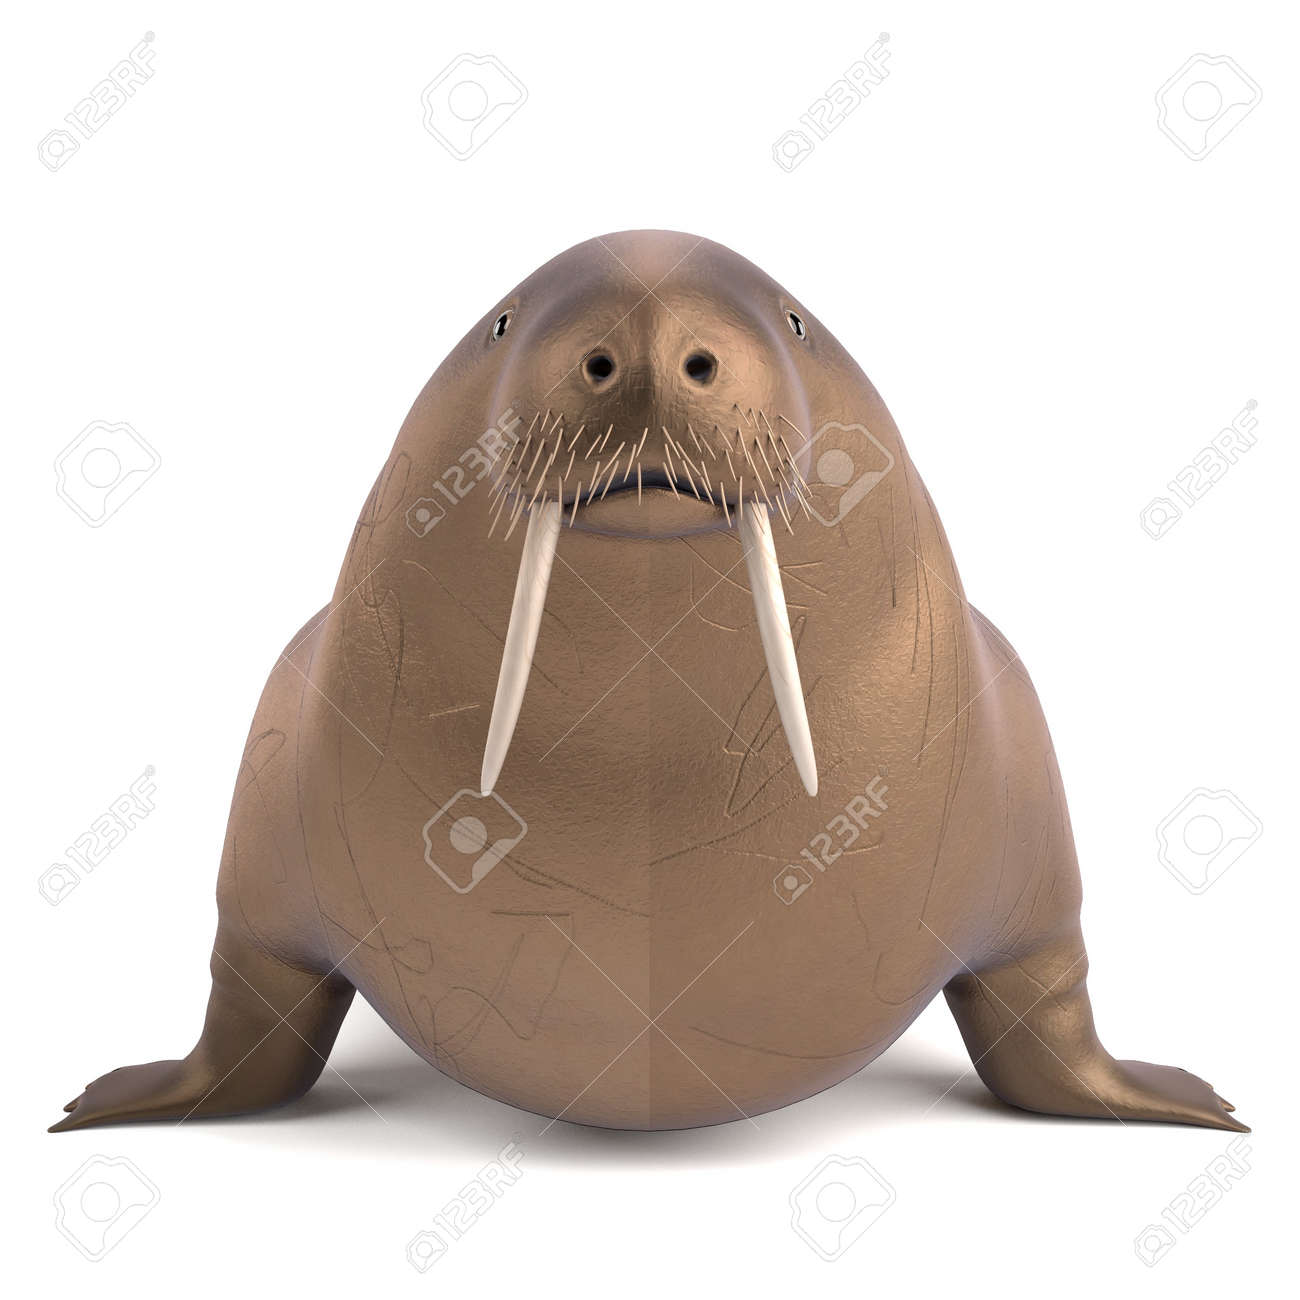 3d render of walrus animal stock photo picture and royalty free